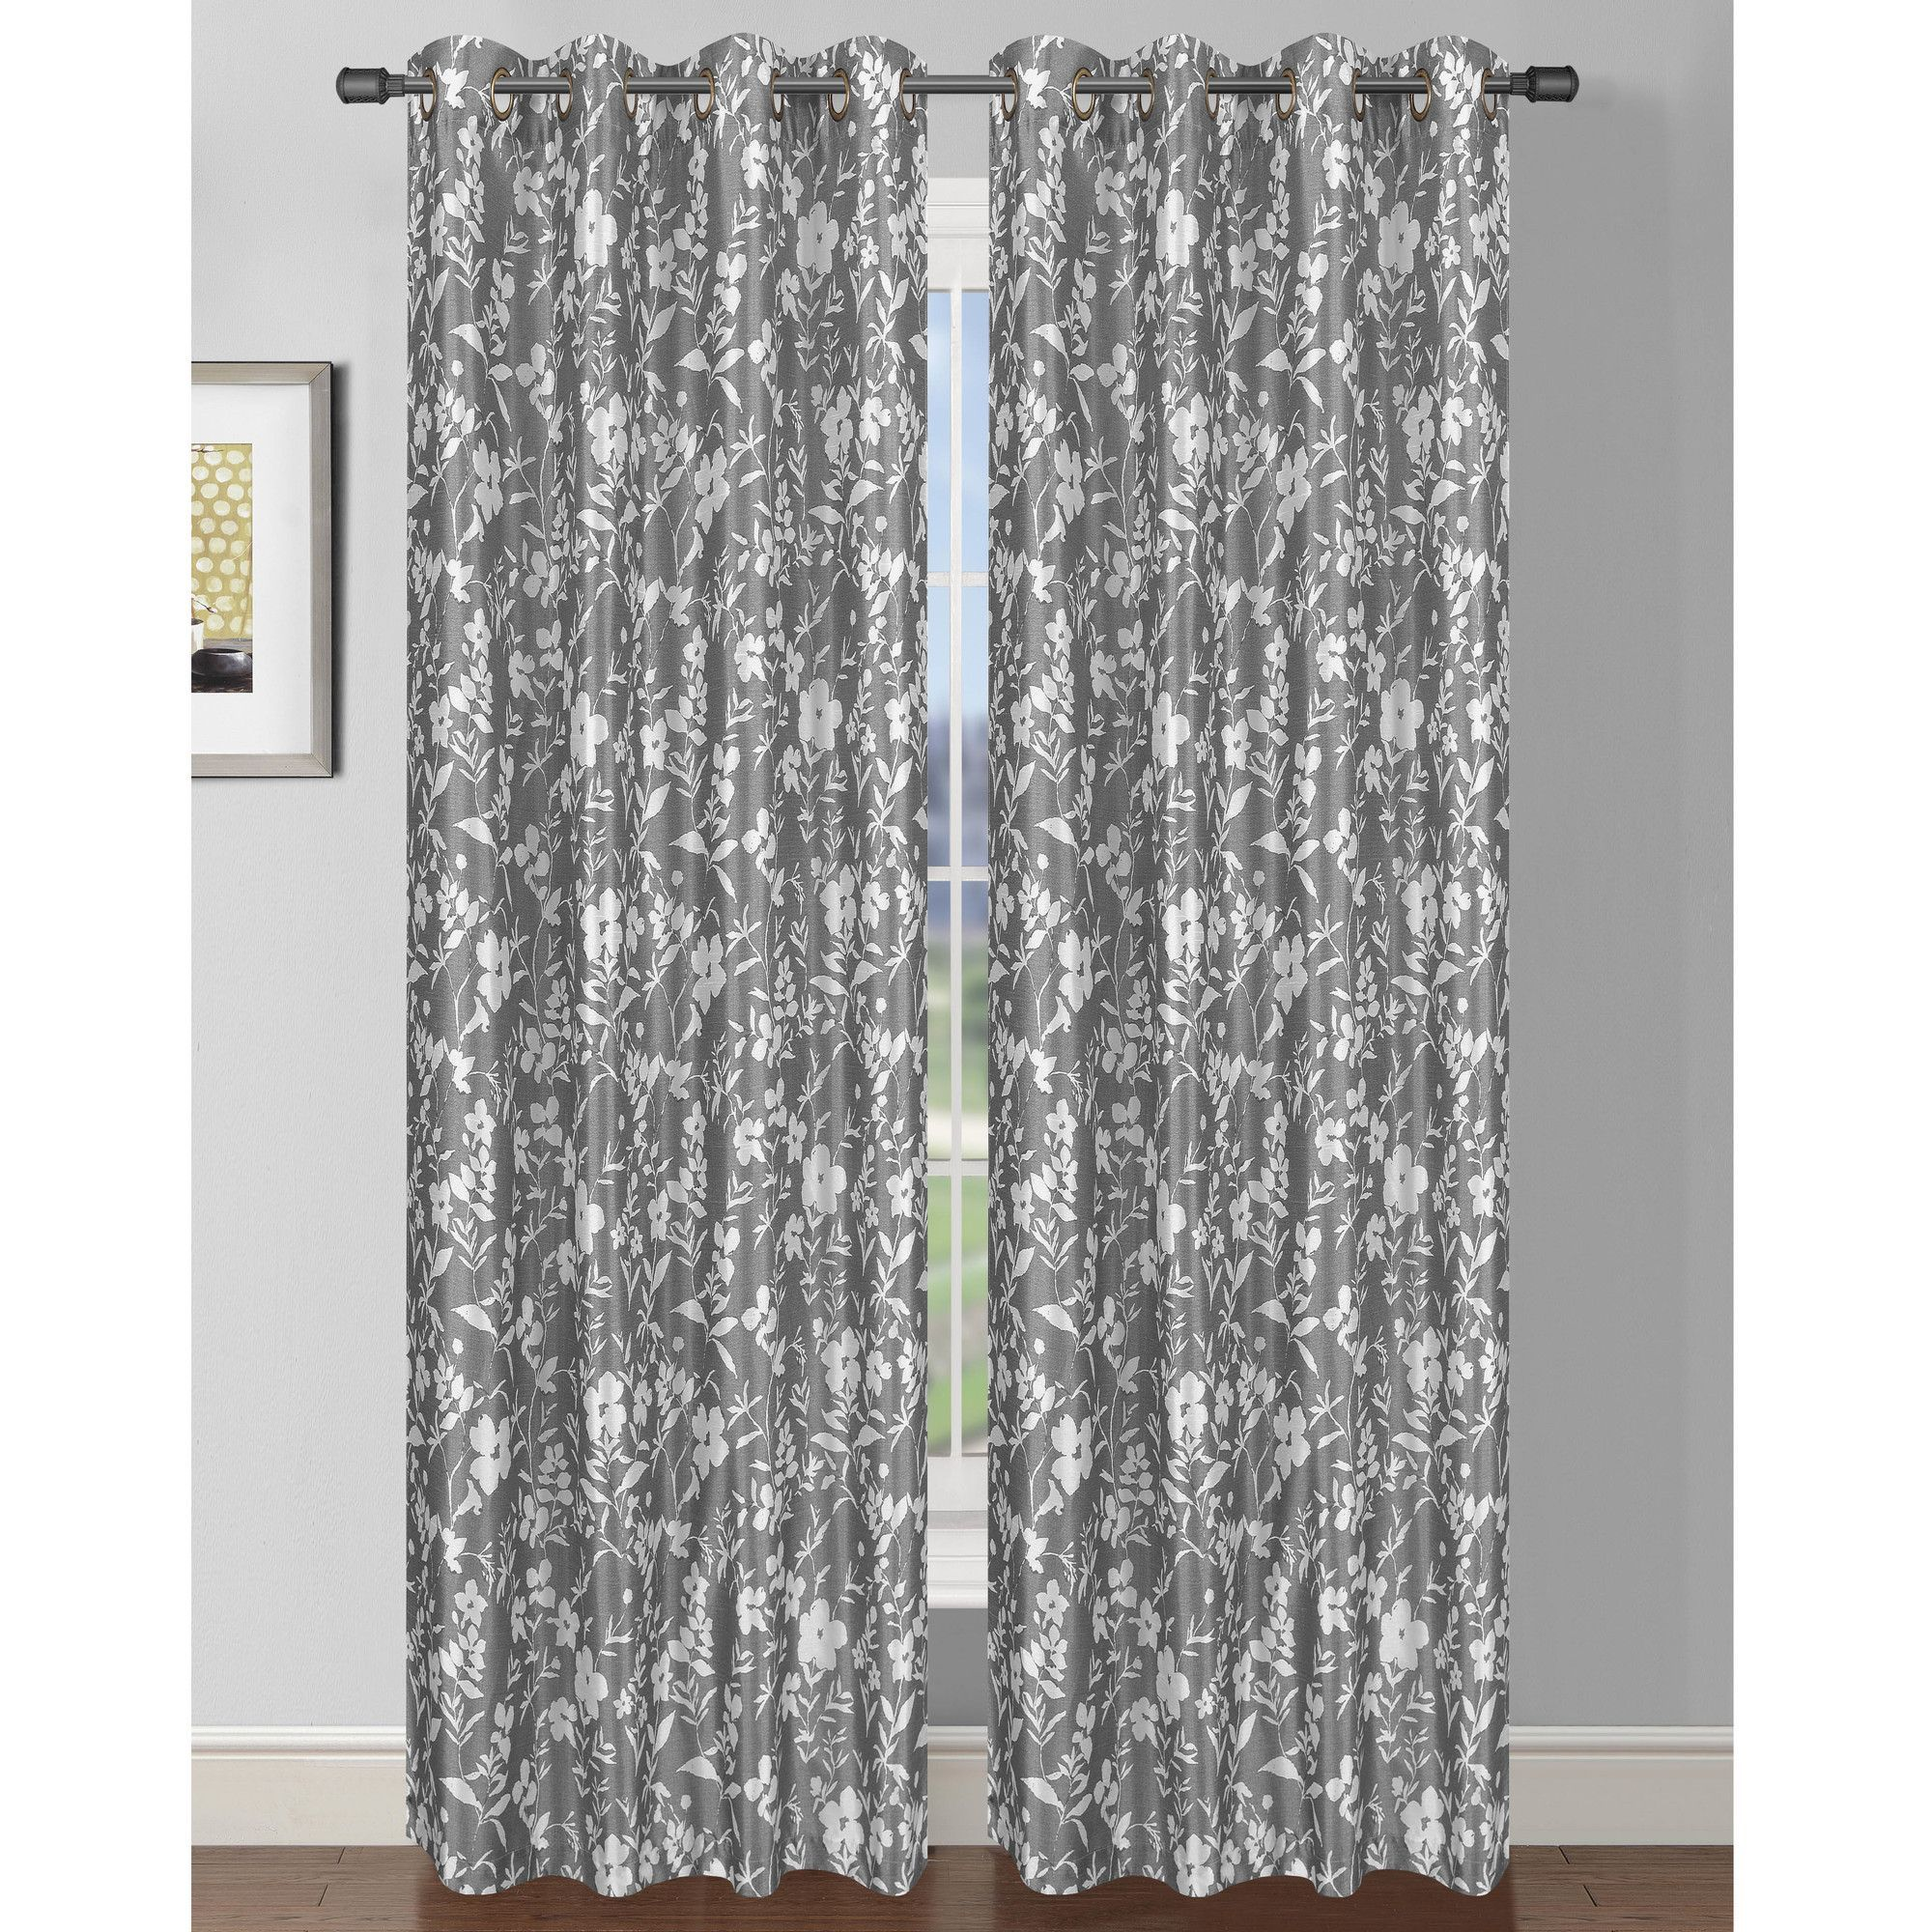 Window Elements Semi Opaque Florabotanica Printed 54 In L Grommet Extra Wide Curtain Panel Faux Silk The Home Depot